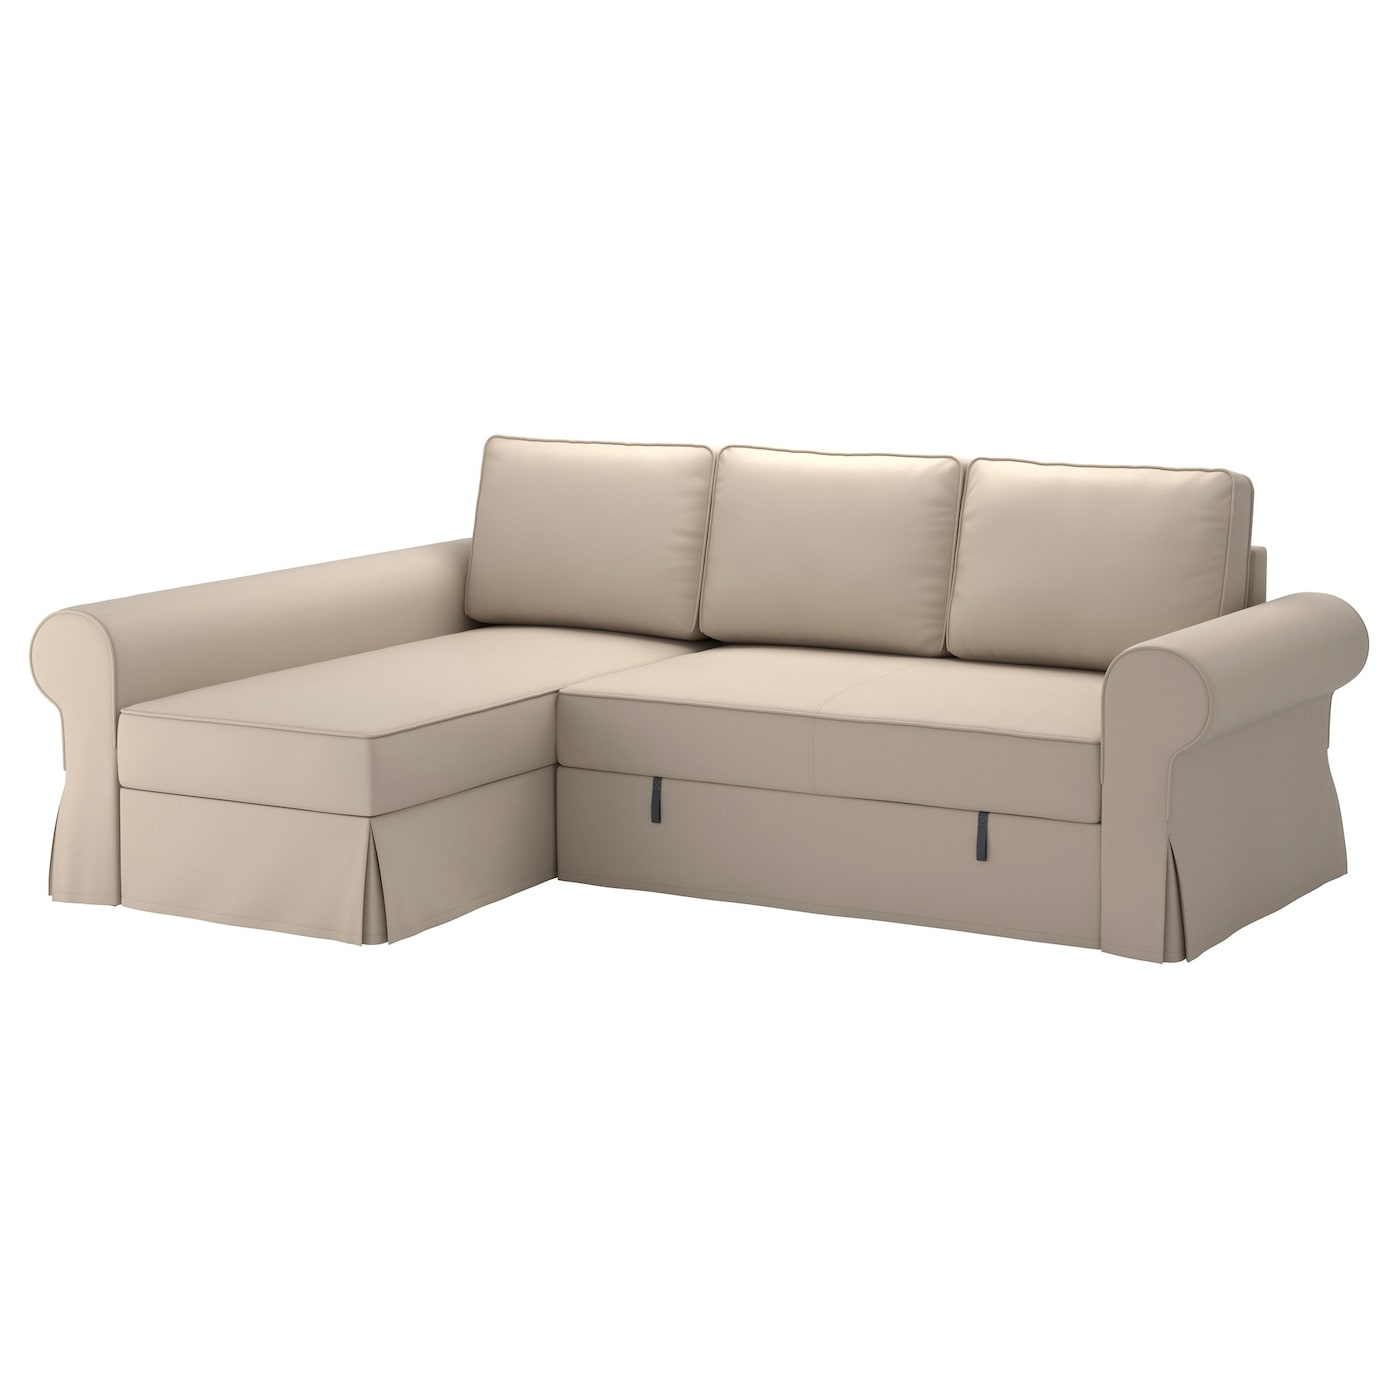 Backabro sofa bed with chaise longue ramna beige ikea for Chaise sofa bed